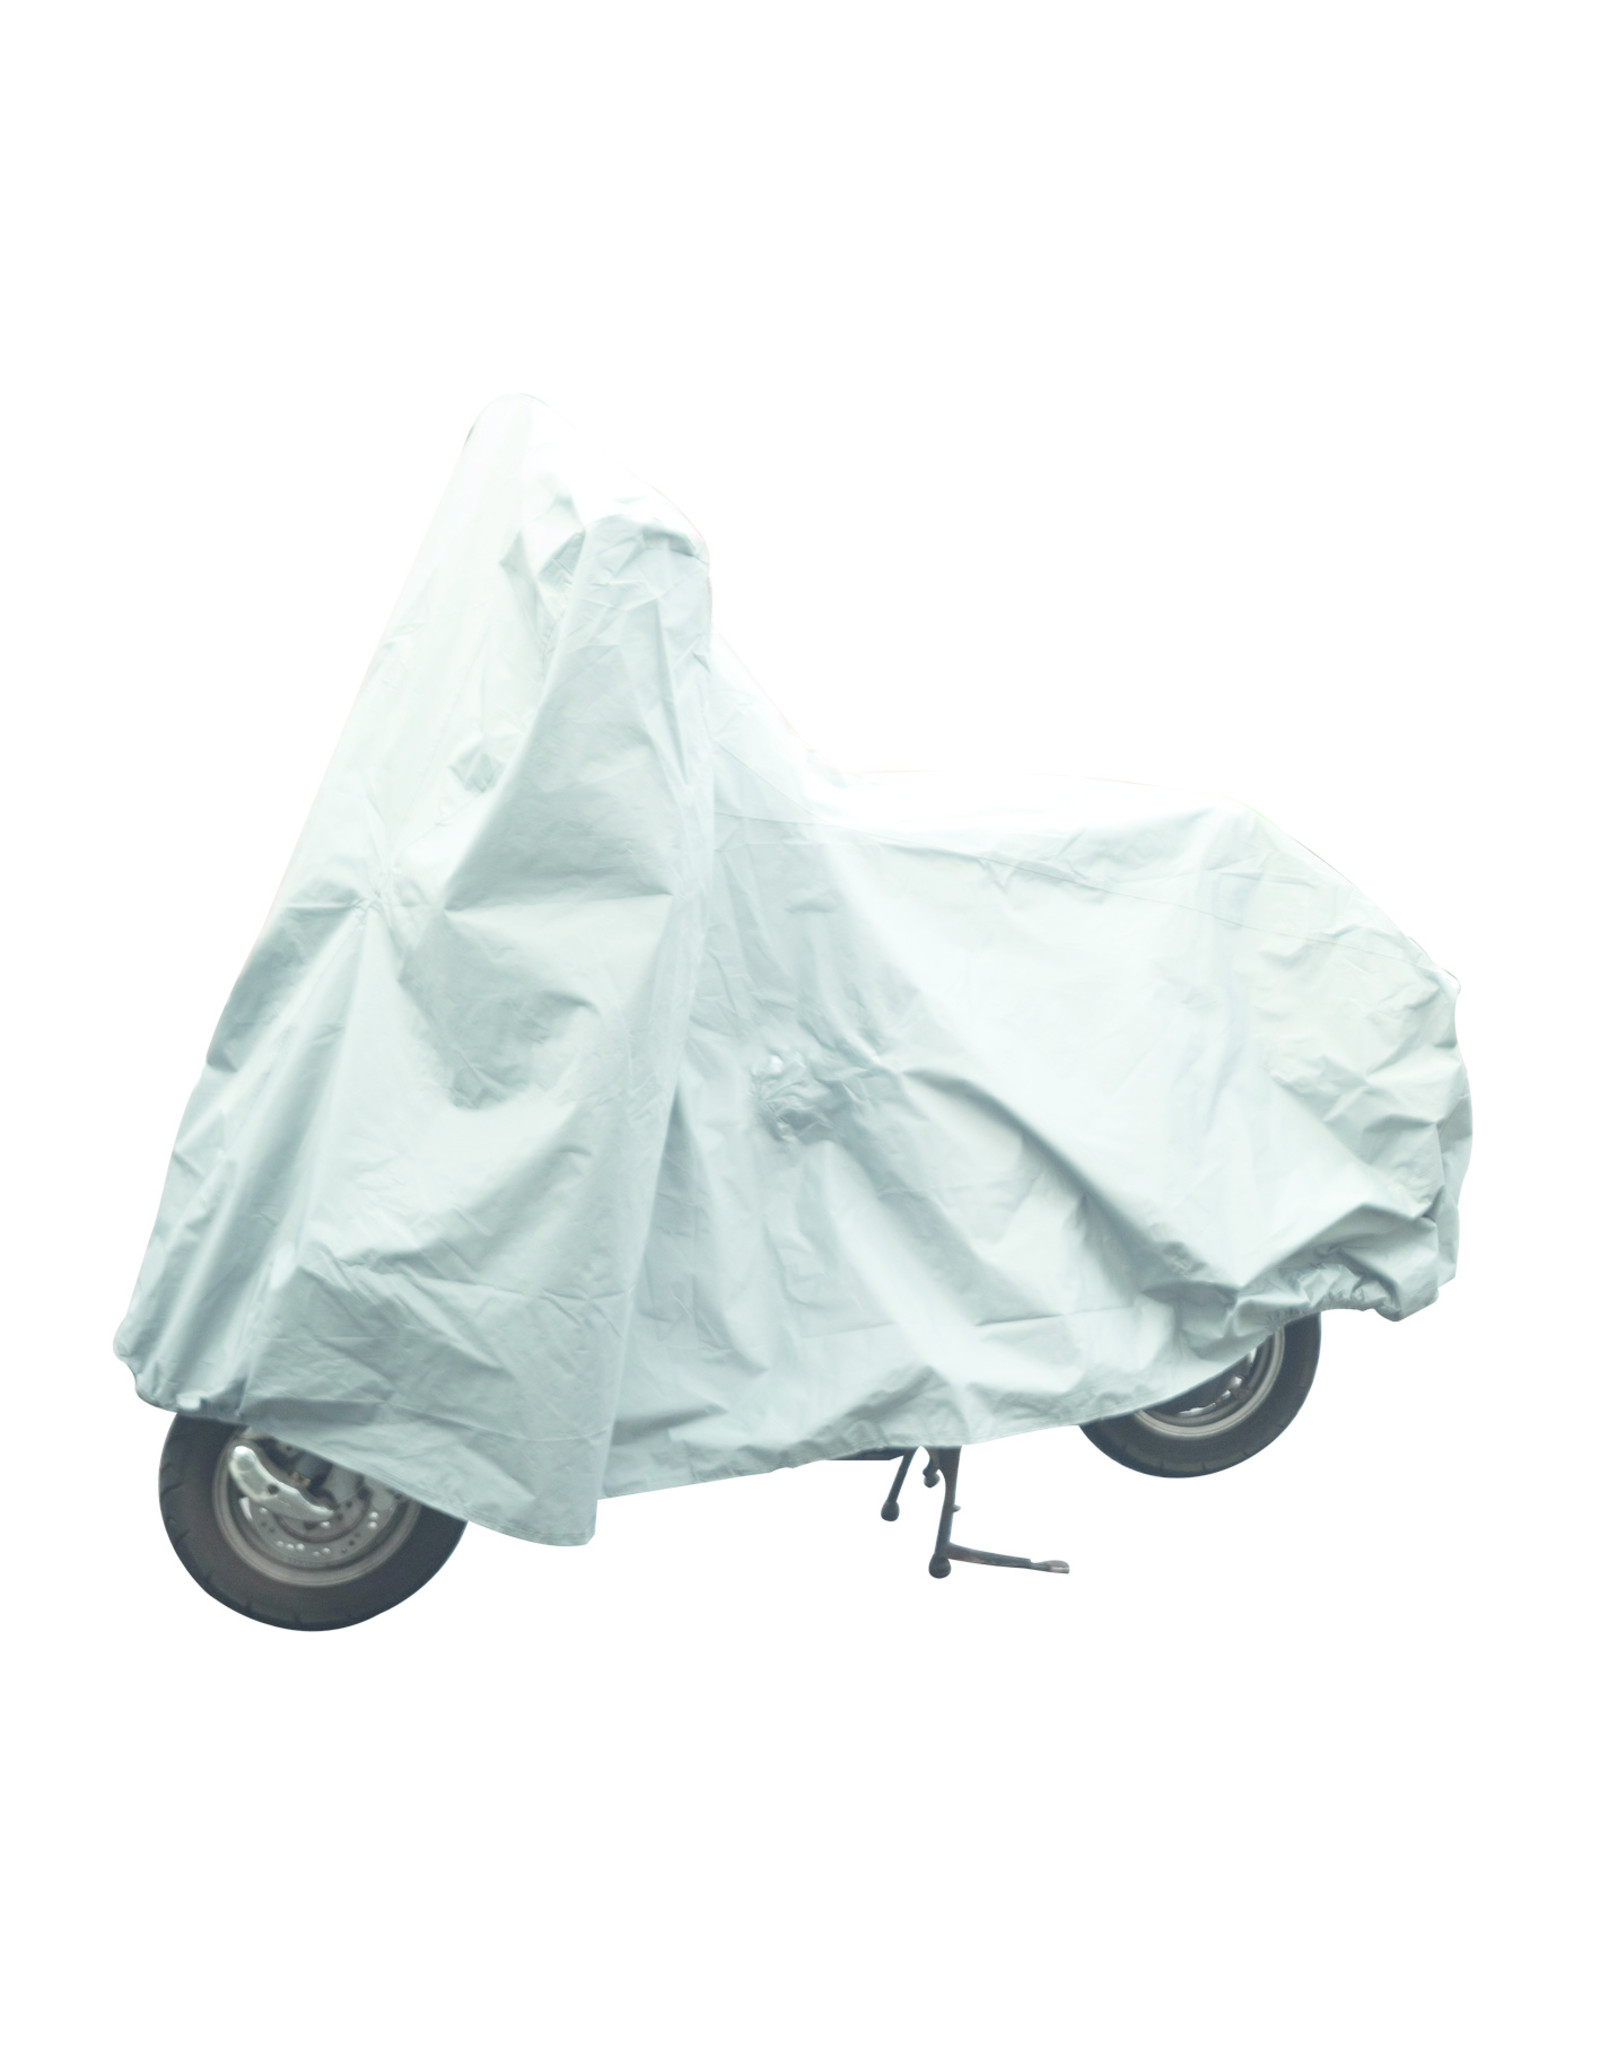 Lifetime Wheels Motor & Scooter Cover XL - Water-repellent